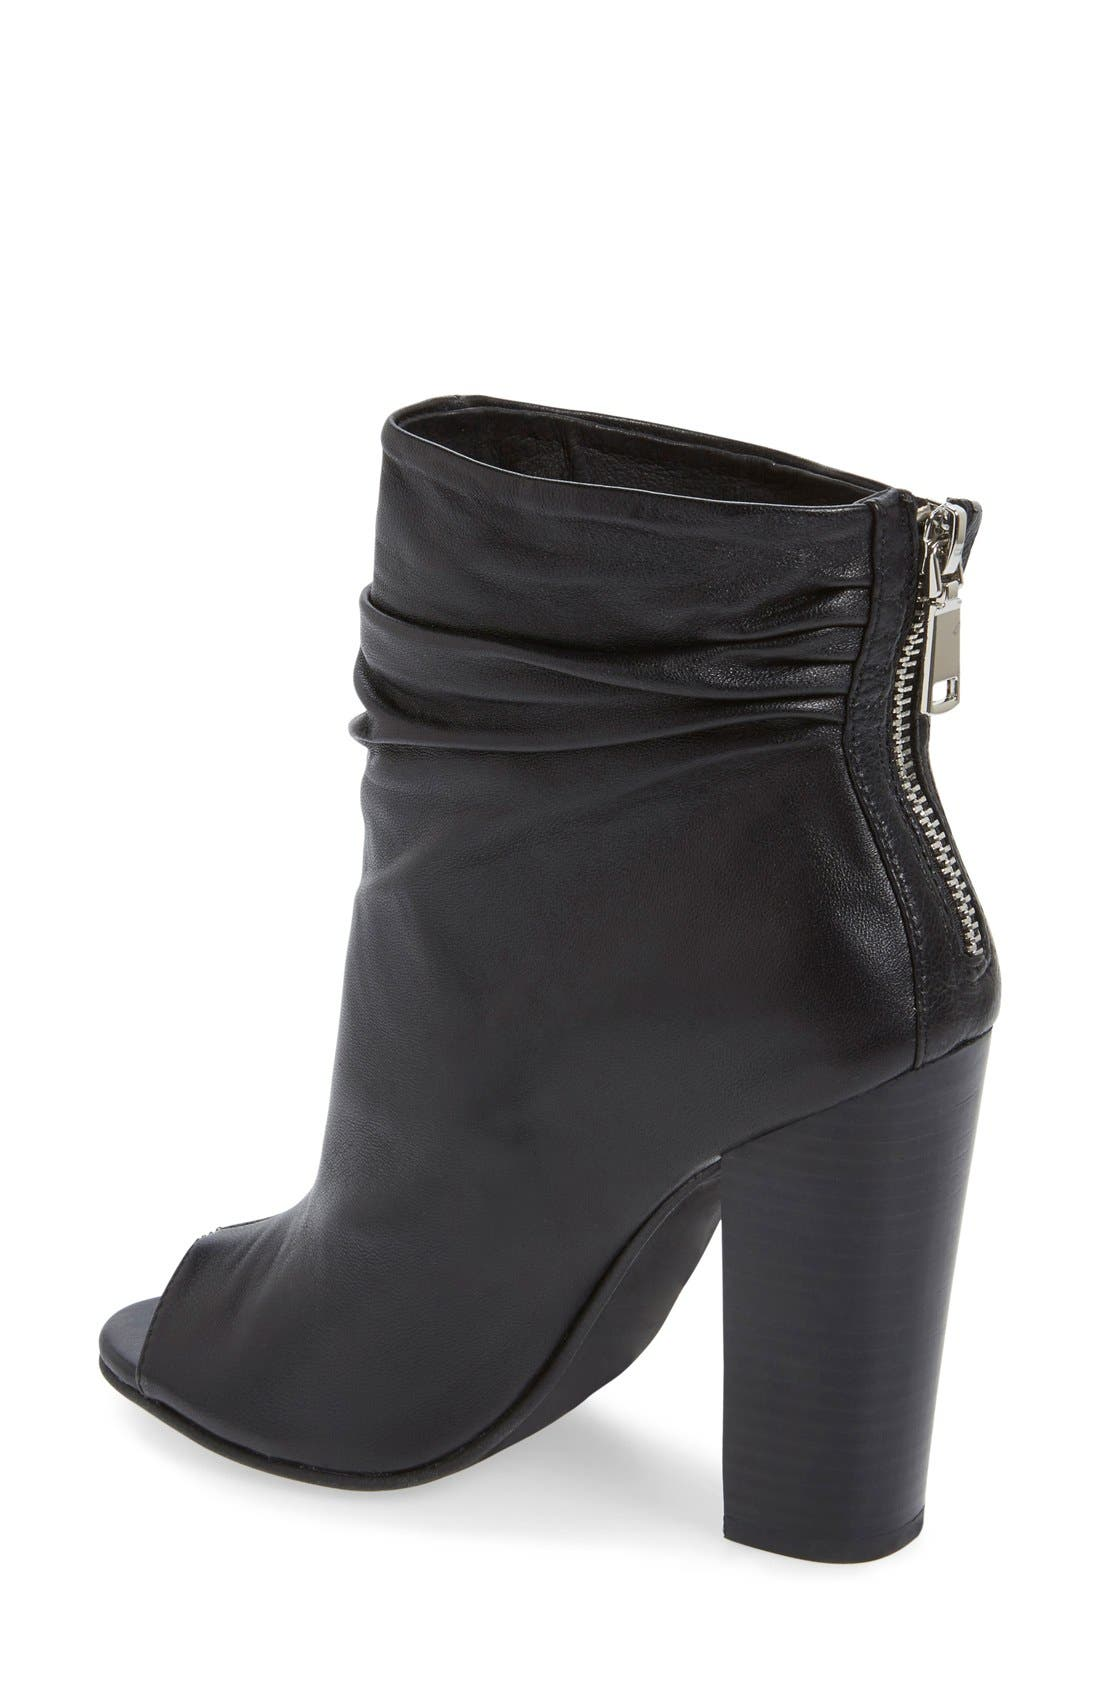 'Liam' Peep Toe Bootie,                             Alternate thumbnail 2, color,                             001